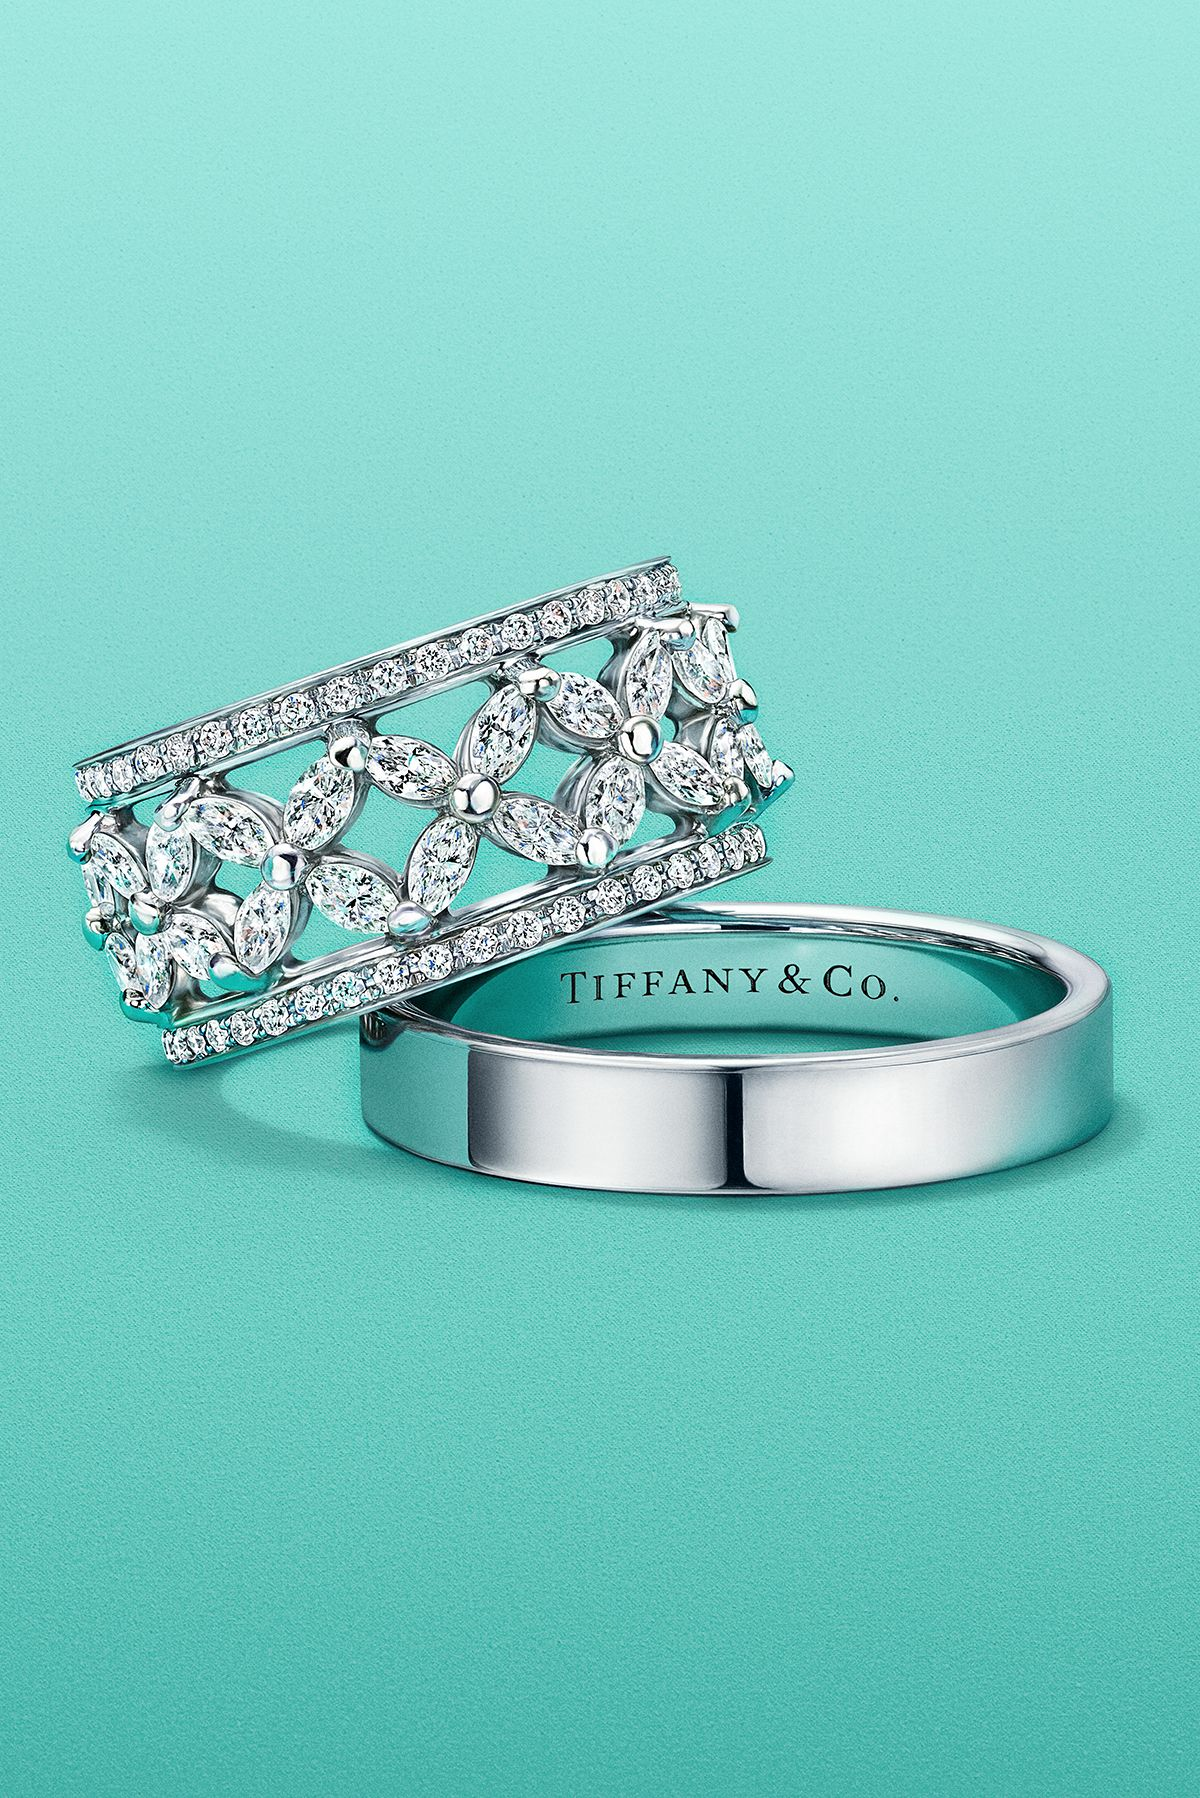 Tiffany Victoria® band ring in platinum with diamonds and